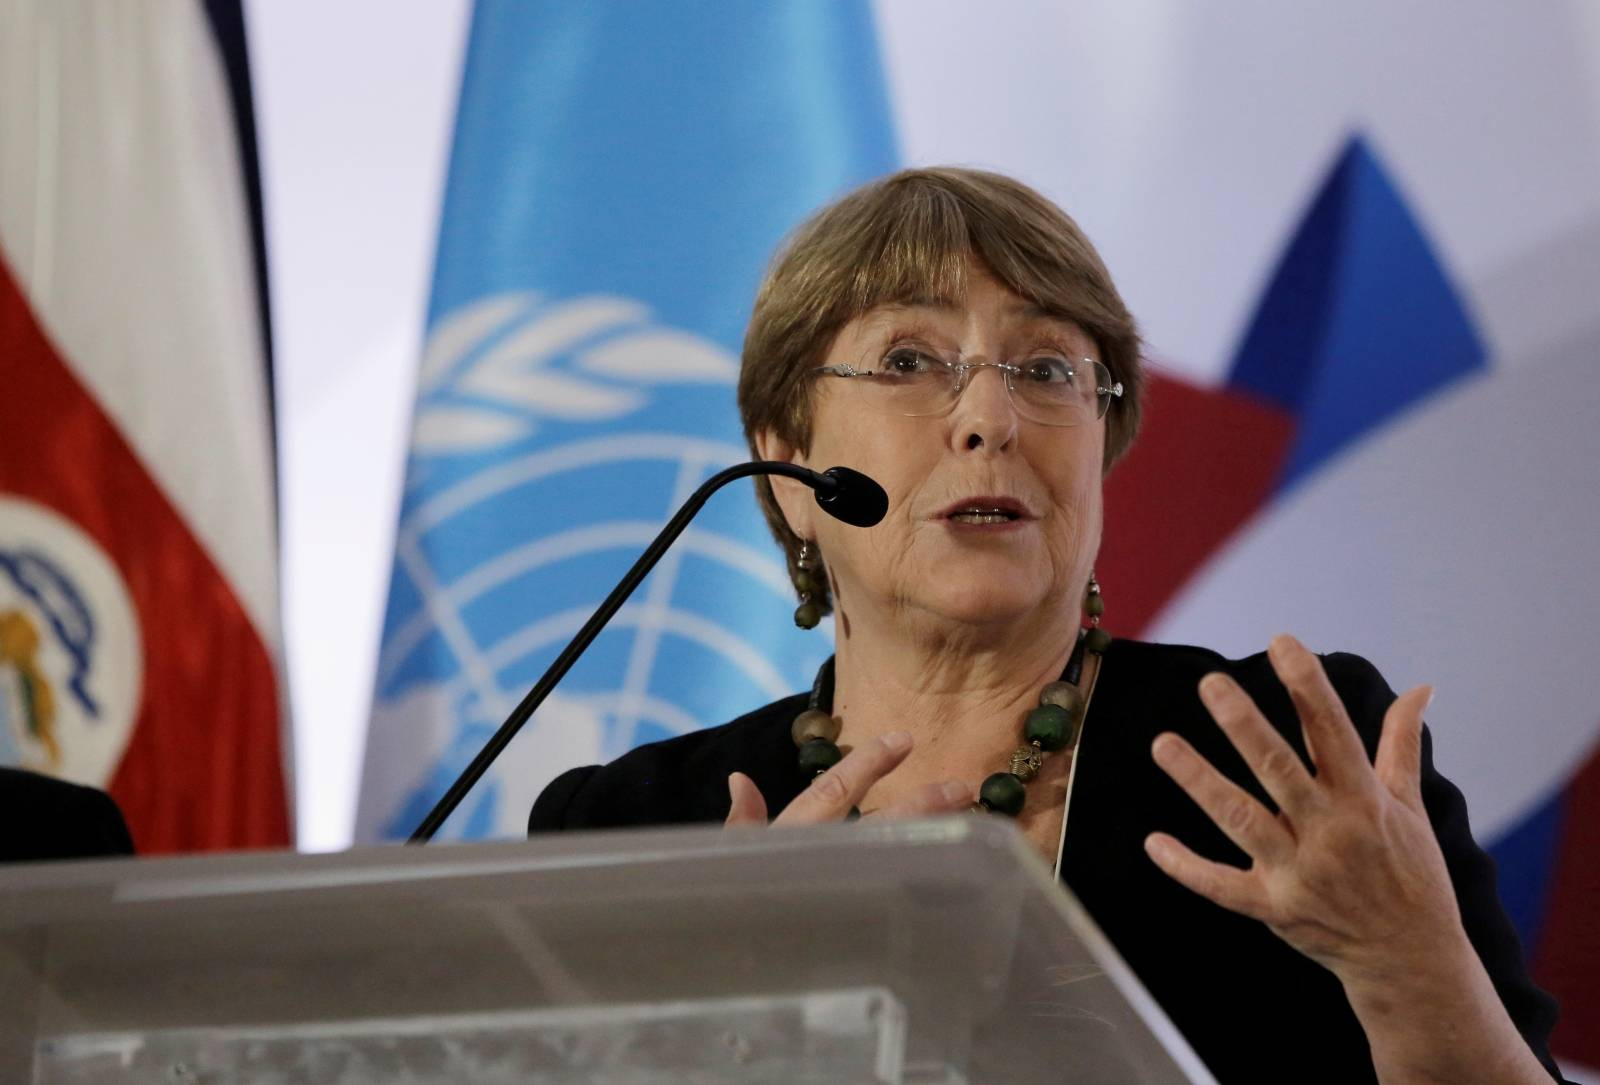 FILE PHOTO: U.N. High Commissioner for Human Rights Michelle Bachelet gives a speach during a forum on women of African descent in San Jose